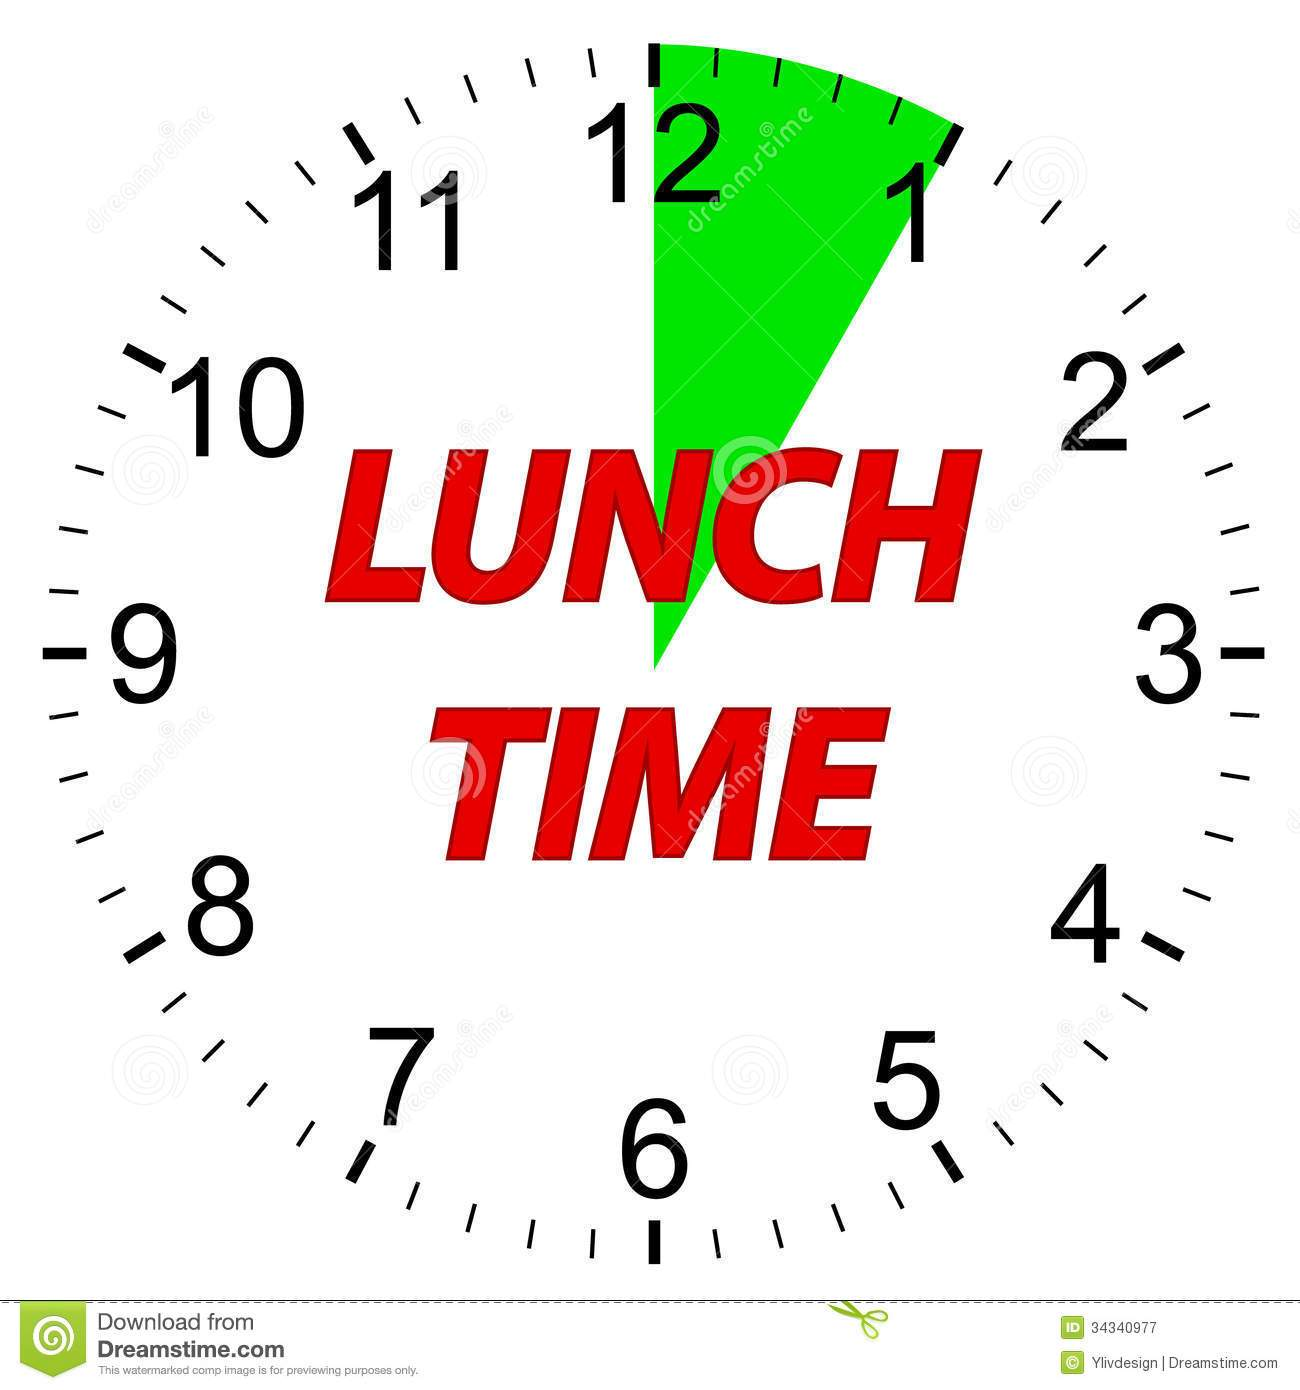 Lunch break sign clipart 7 » Clipart Portal.